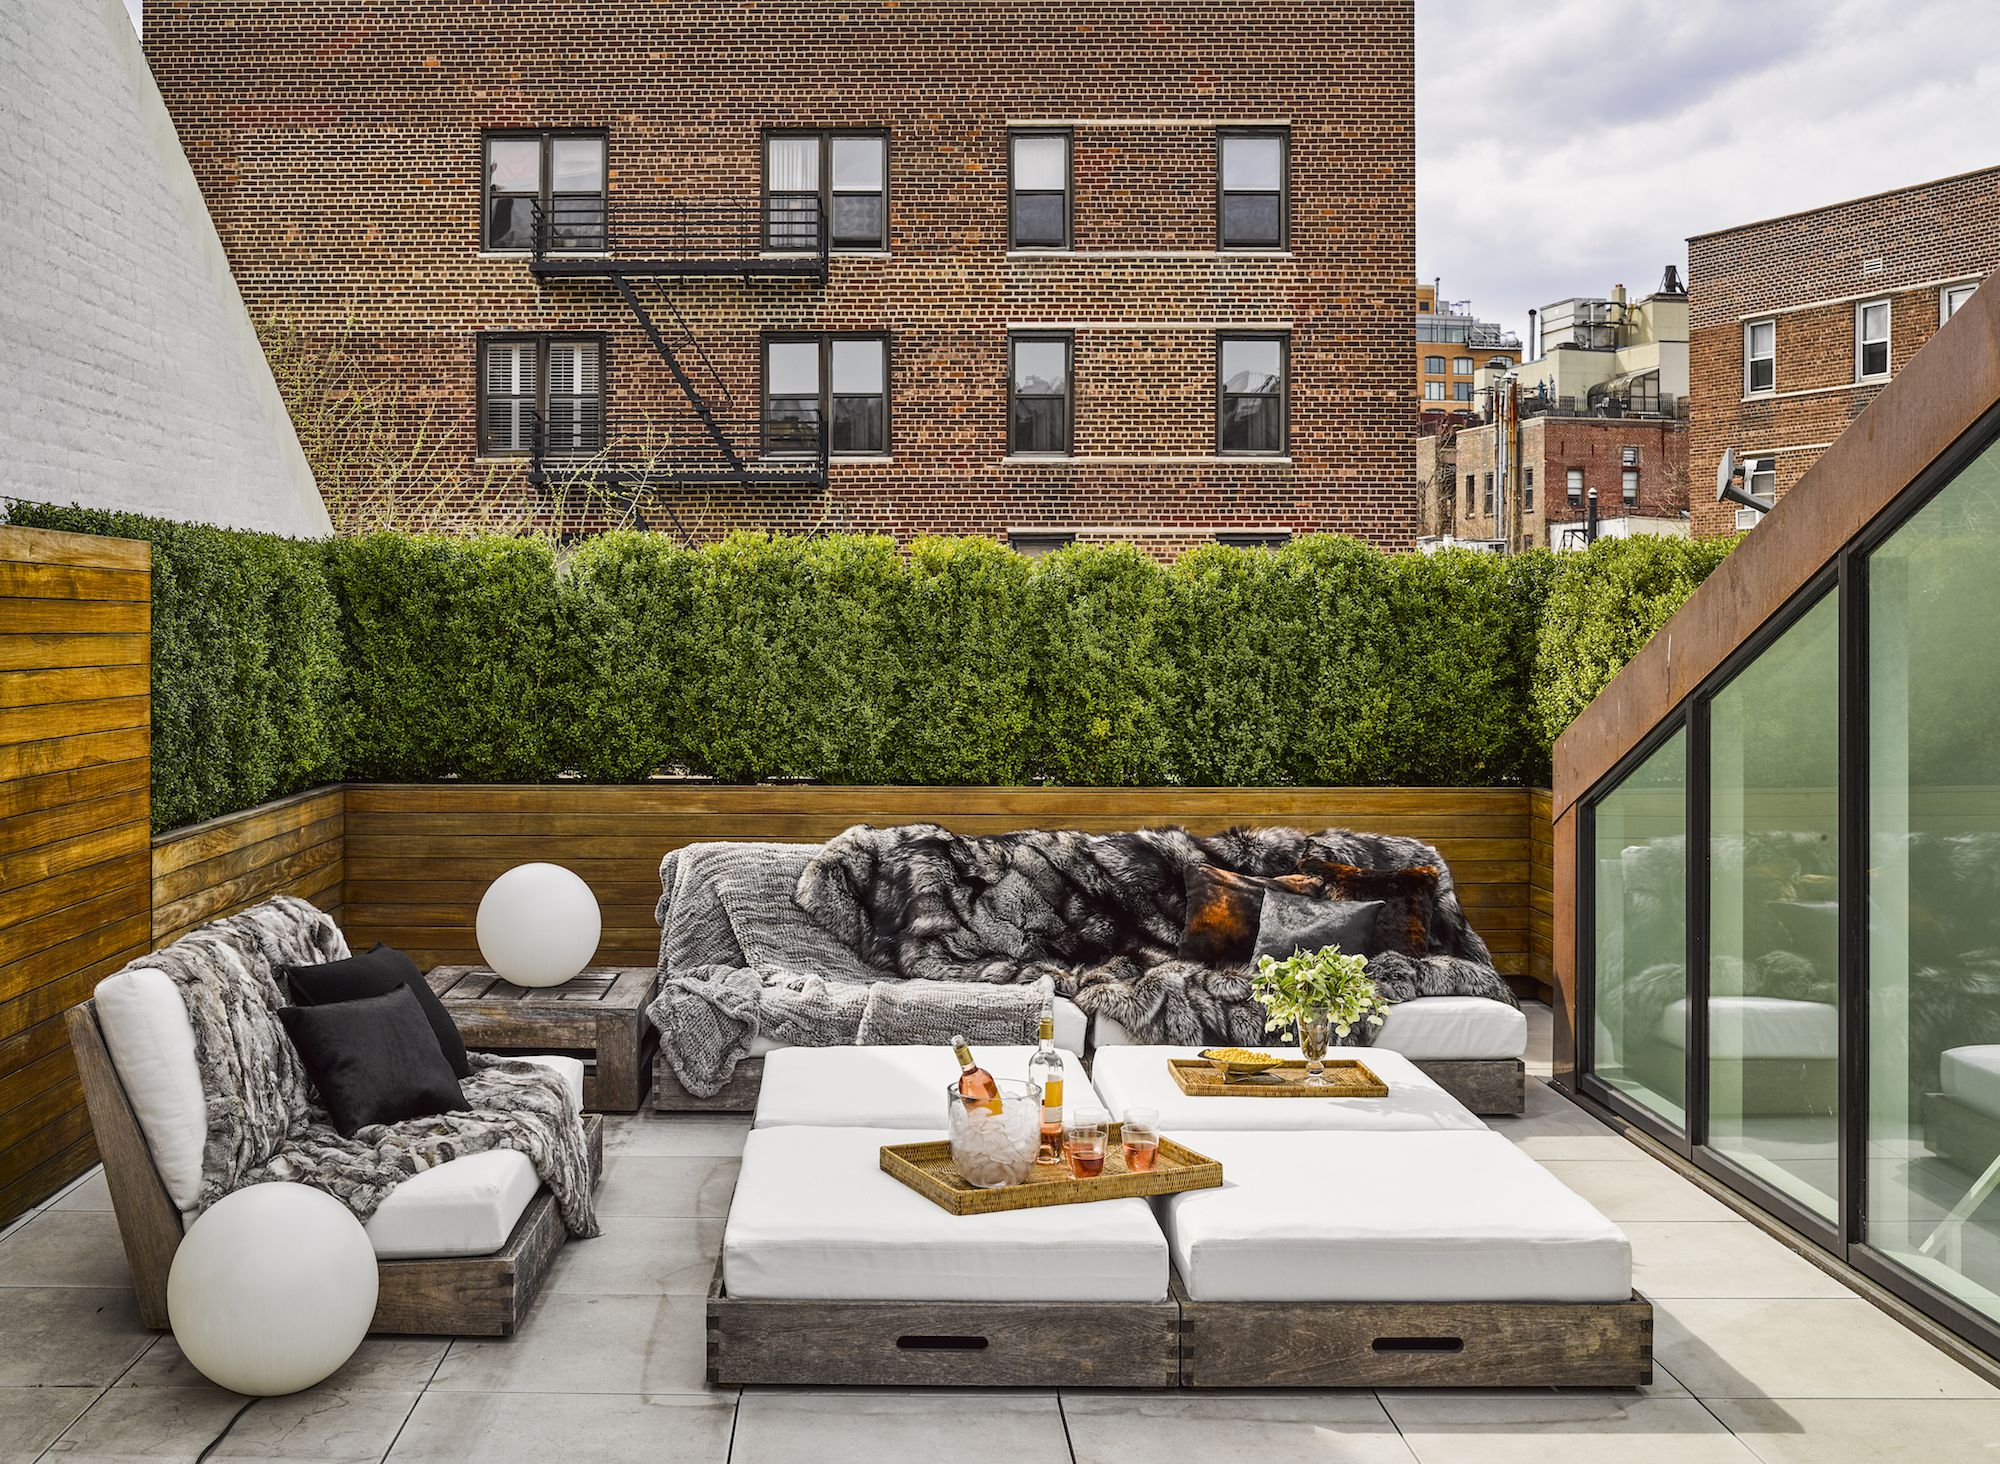 patio design ideas a small patio is, ironically, the perfect place for big ideas. HQUNCXR